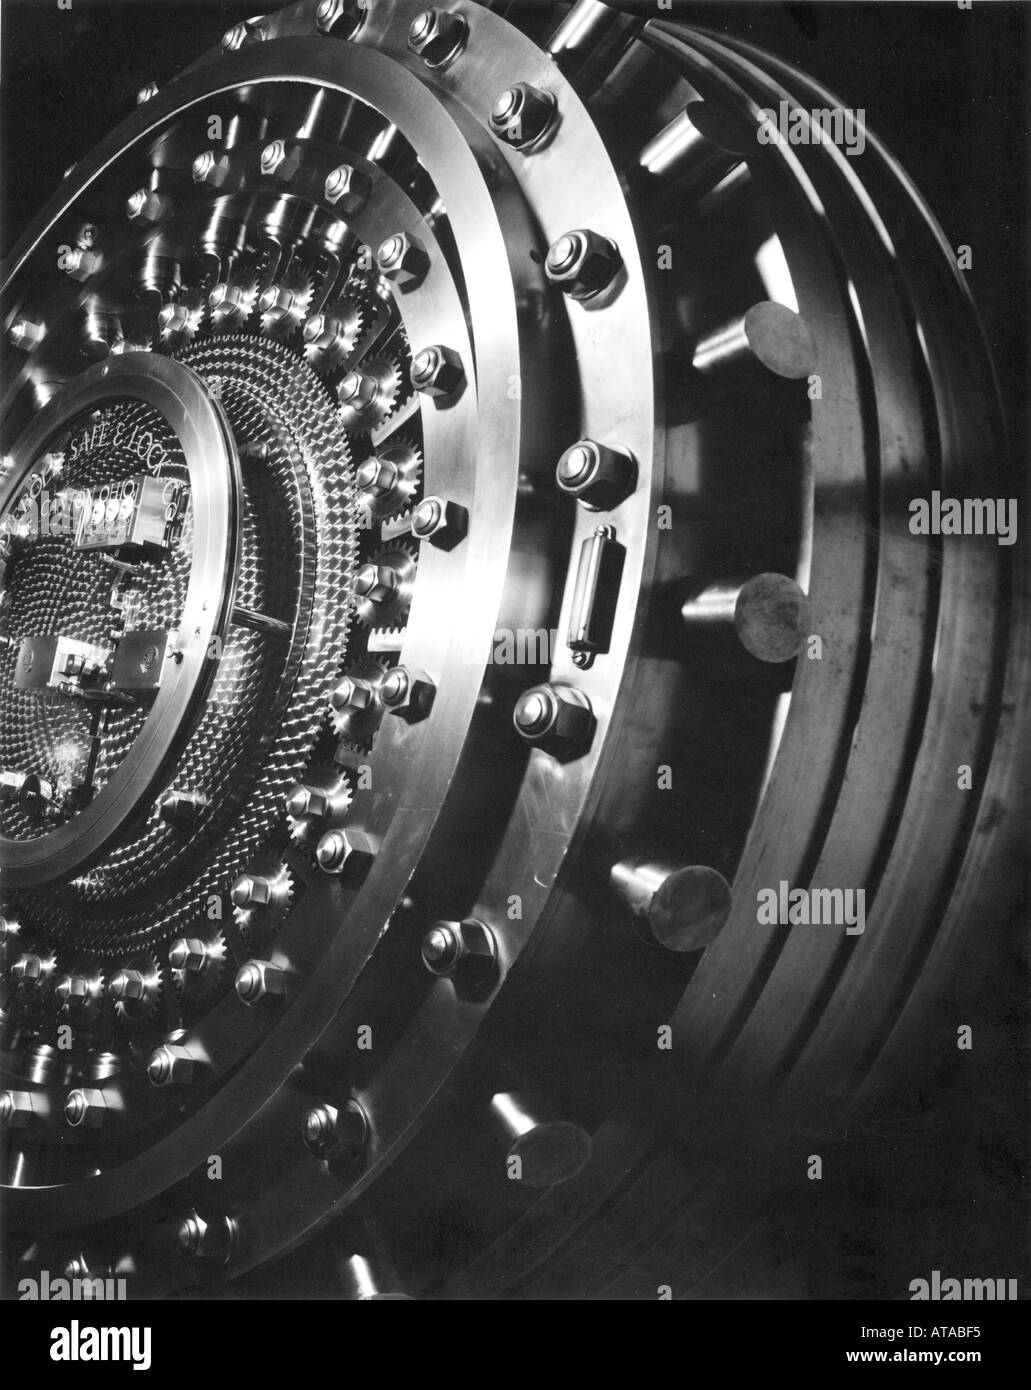 Bank vault door - Stock Image